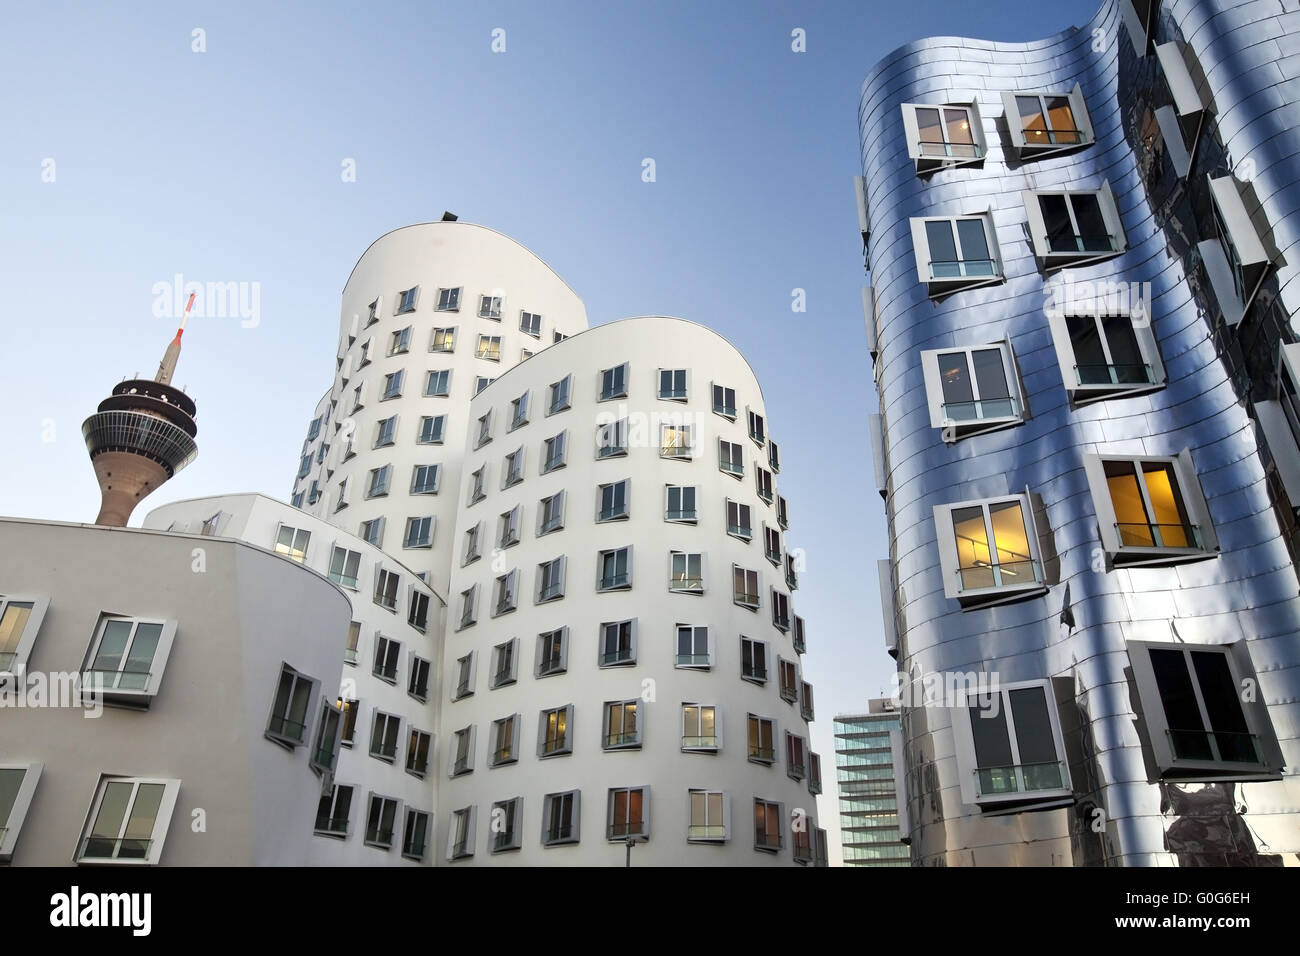 Two Gehry buildings and the Rhine Tower, Duesseldorf, North Rhine-Westphalia, Germany, Europe - Stock Image